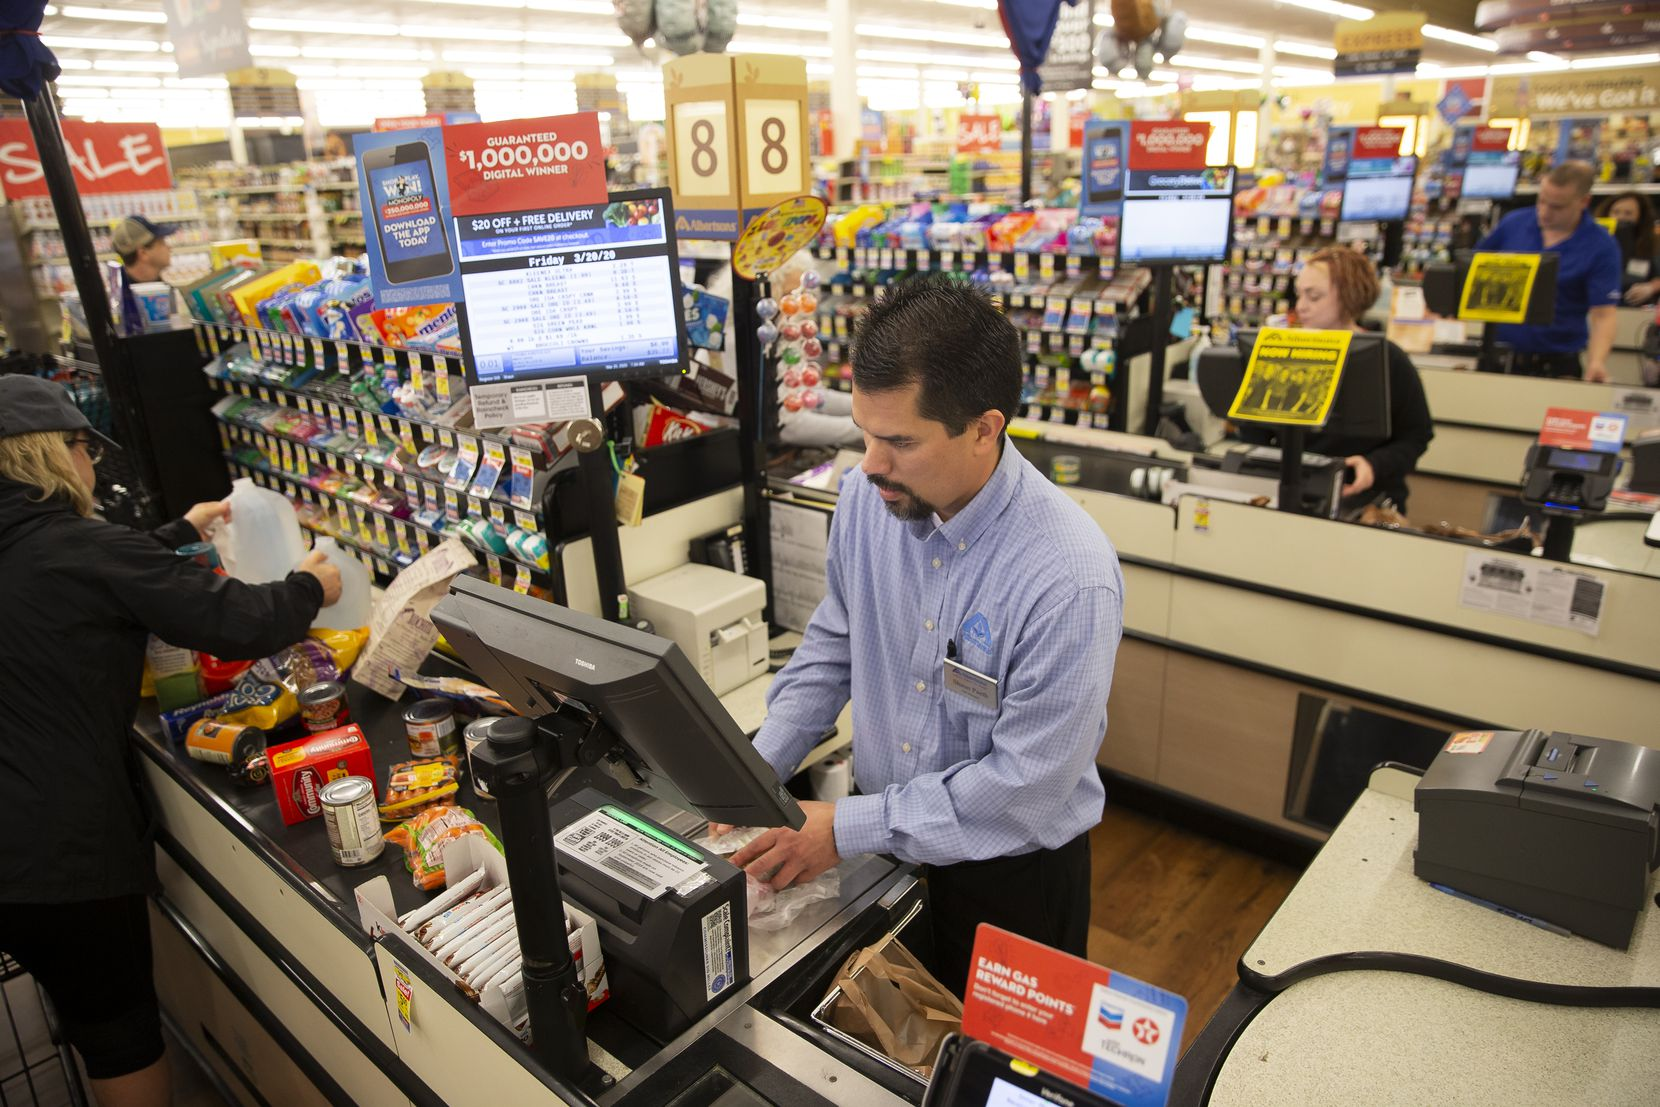 Shaun Paeth, head of general merchandise, jumps on the register at Albertson's on March 20, 2020 in Colleyville. Paeth said that it wasn't normal for the store to be this busy on an early Friday morning before the new coronavirus outbreak. (Juan Figueroa/ The Dallas Morning News)